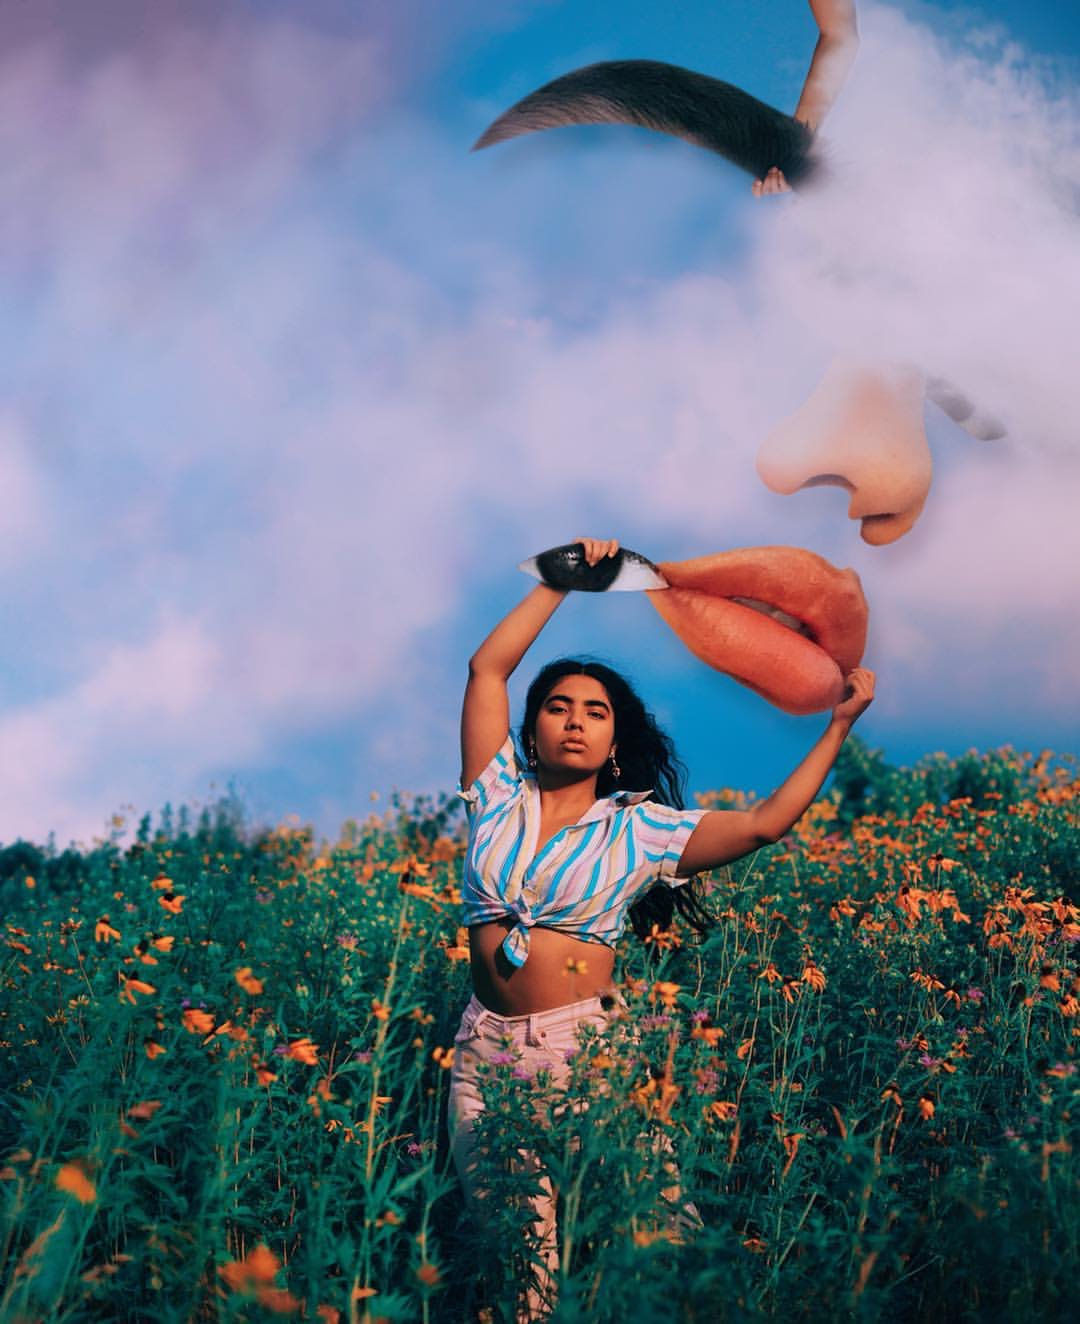 Glenda Lissette's technicolour portraits  bring her dreams and insecurities to life